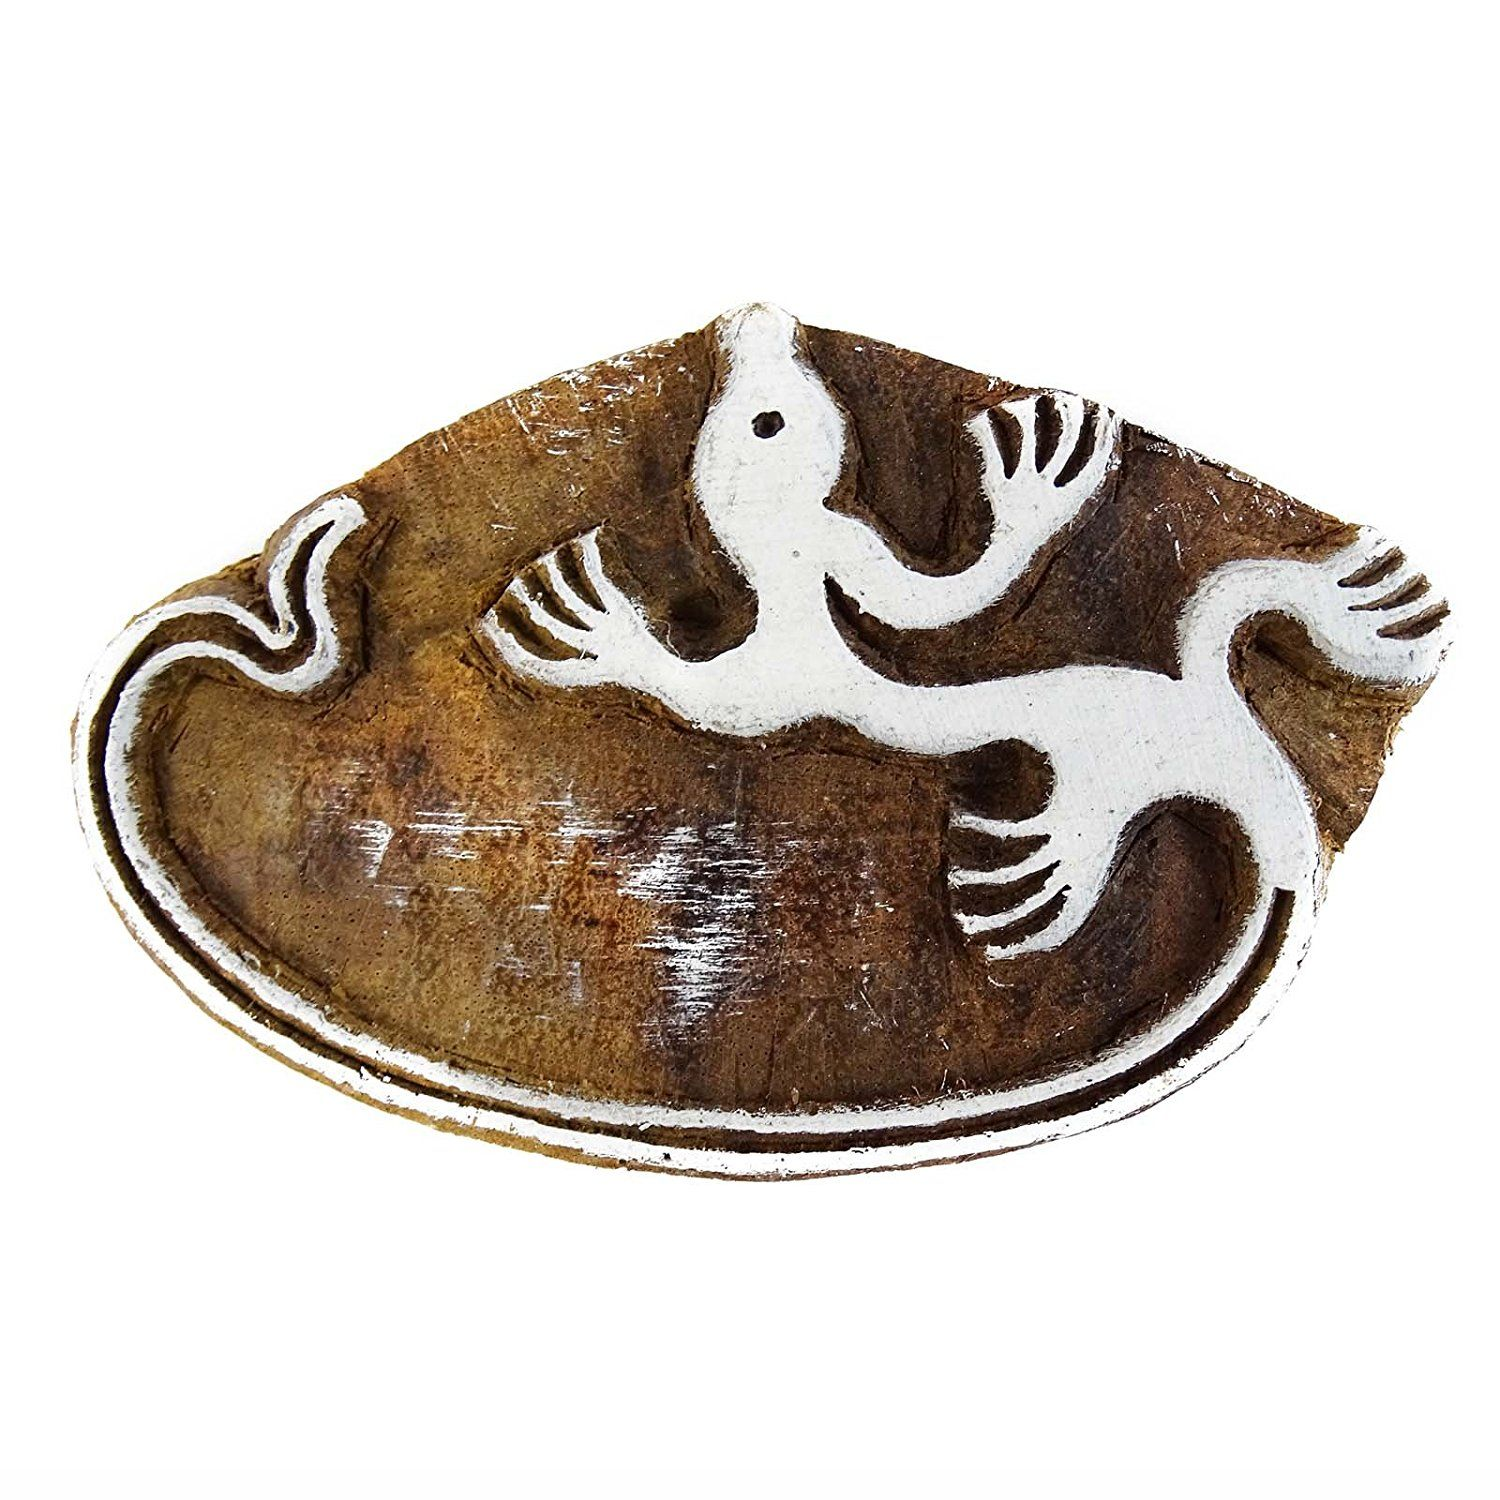 Hand Carved Printing Block Brown Wooden Textile Stamp Lizard Stamp Block Print: Amazon.co.uk: Kitchen & Home